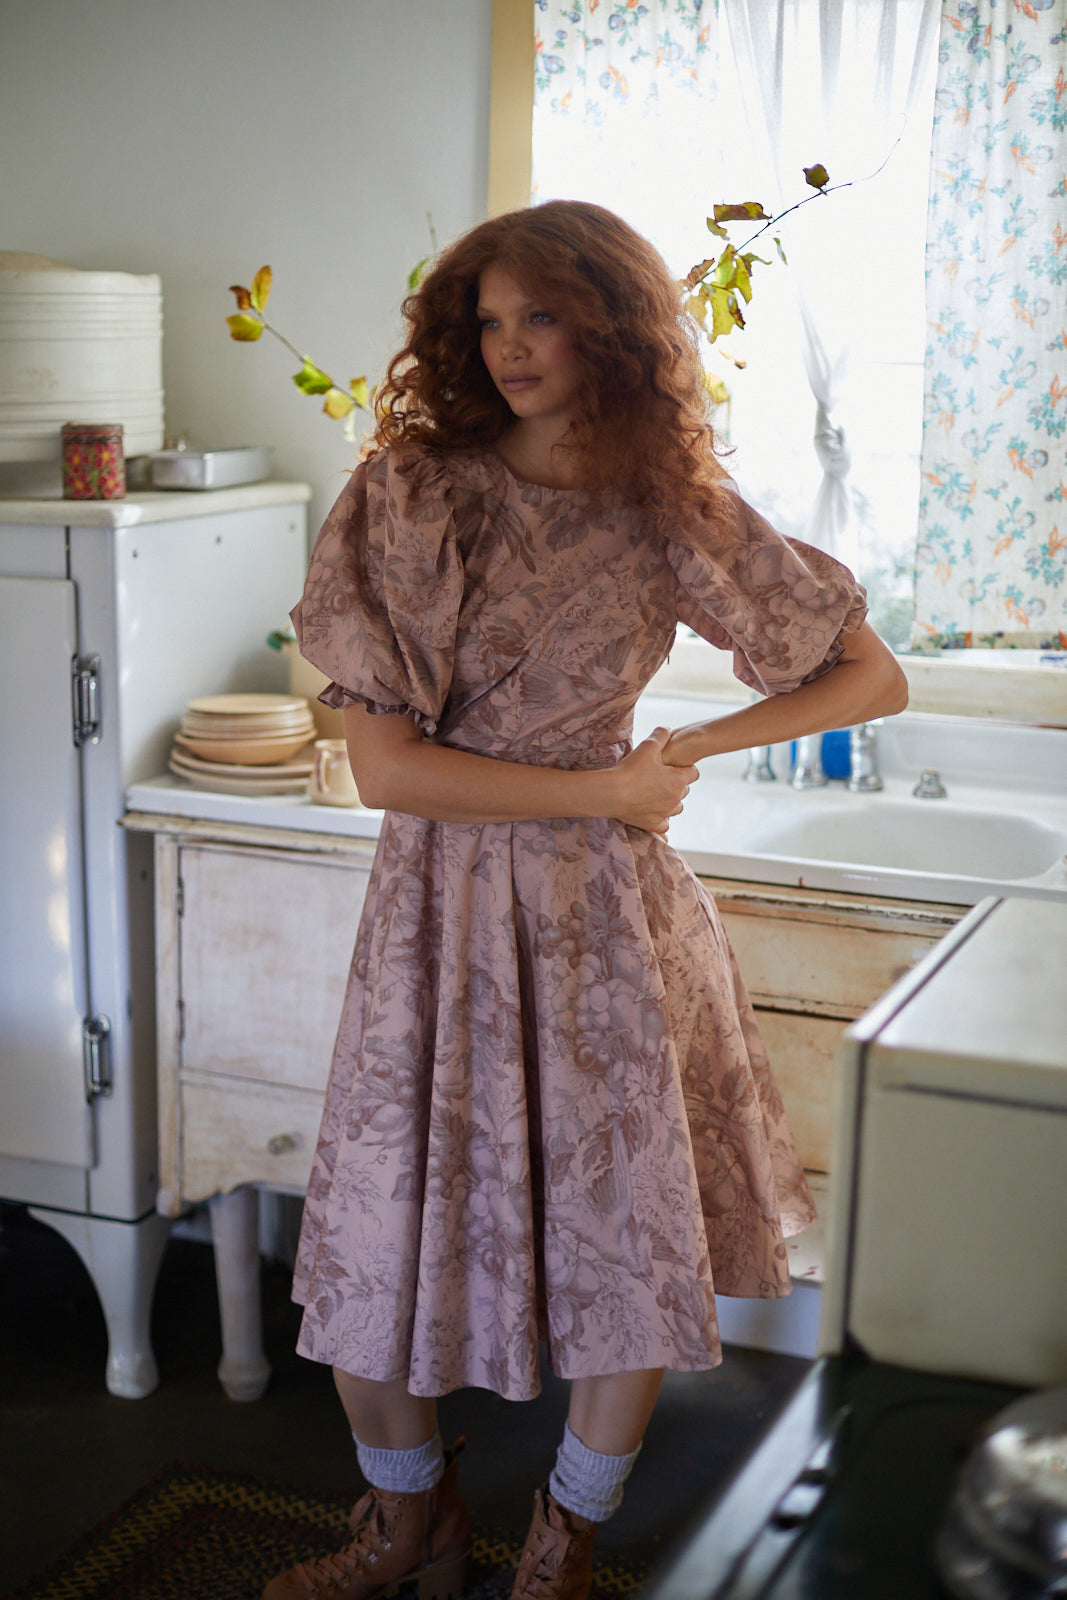 The Autumn Toile Sunroom Dress